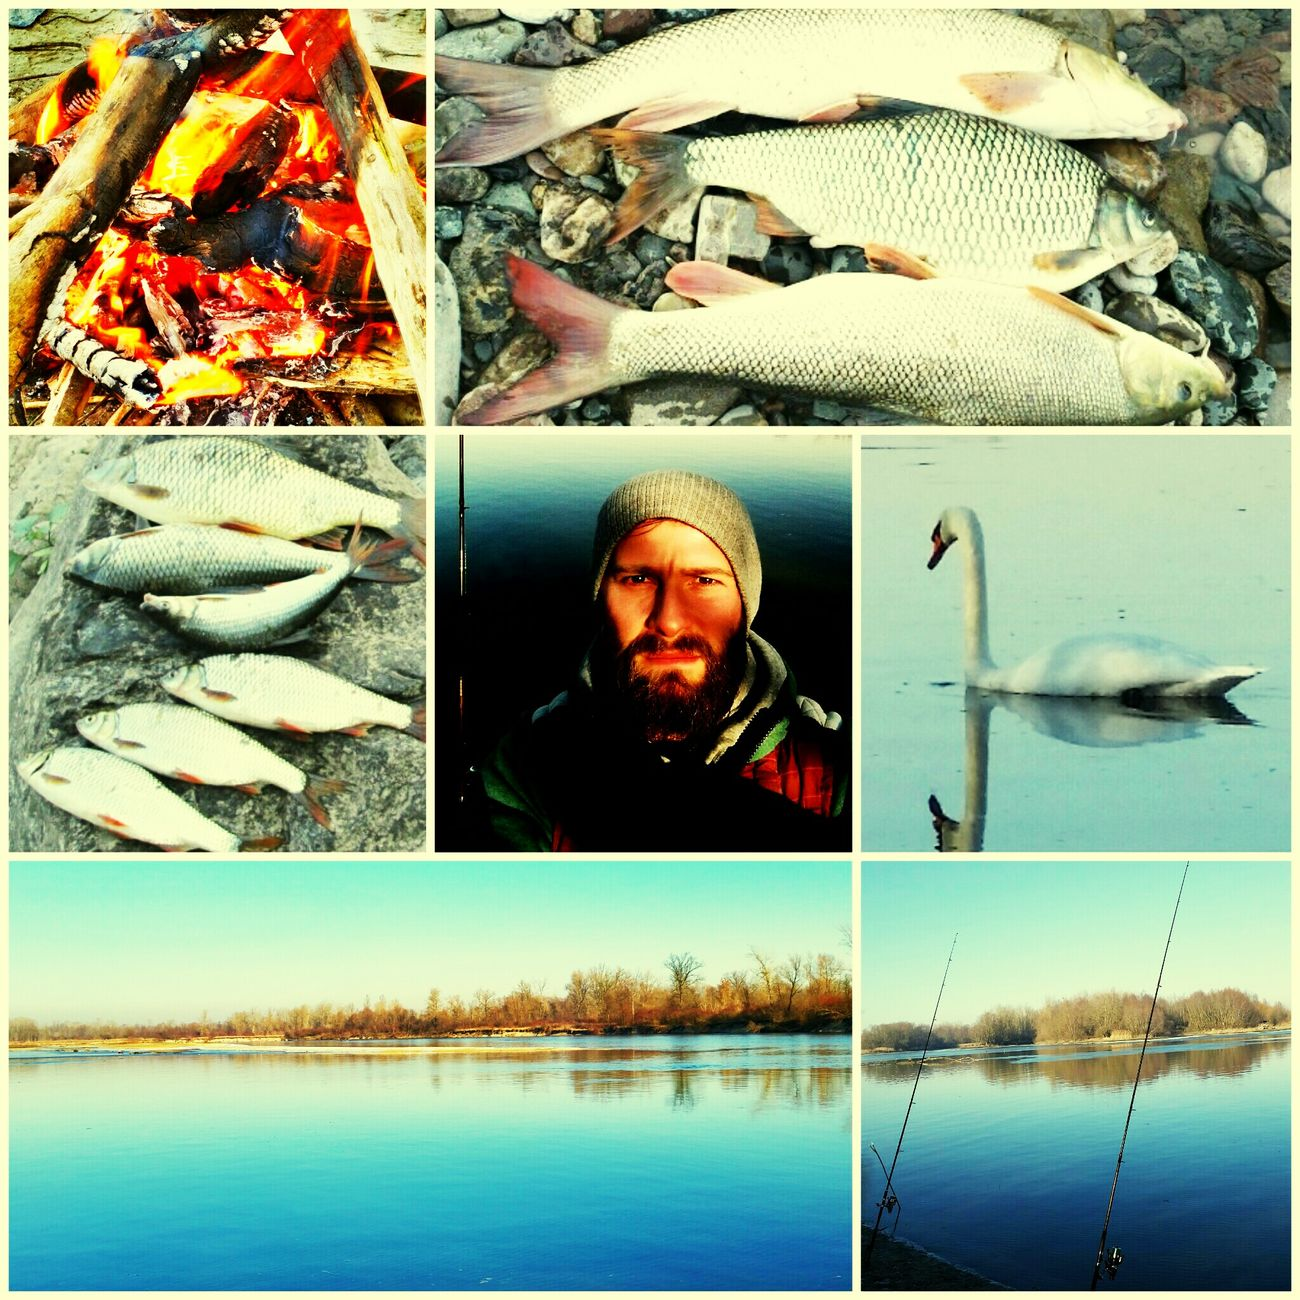 Sun, River, Fishing& Nature Photography.... Relax Day